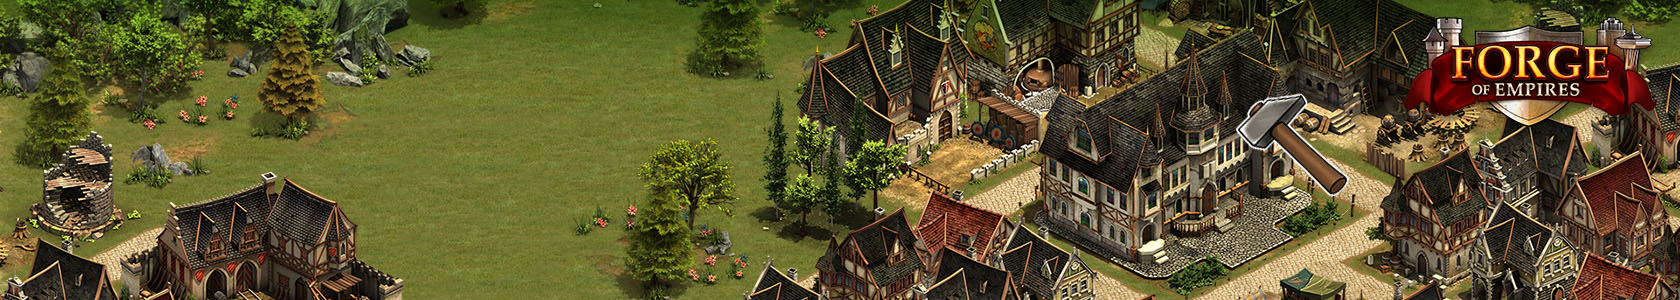 Forge of Empires - Wikinger-Siedlung in Sicht!